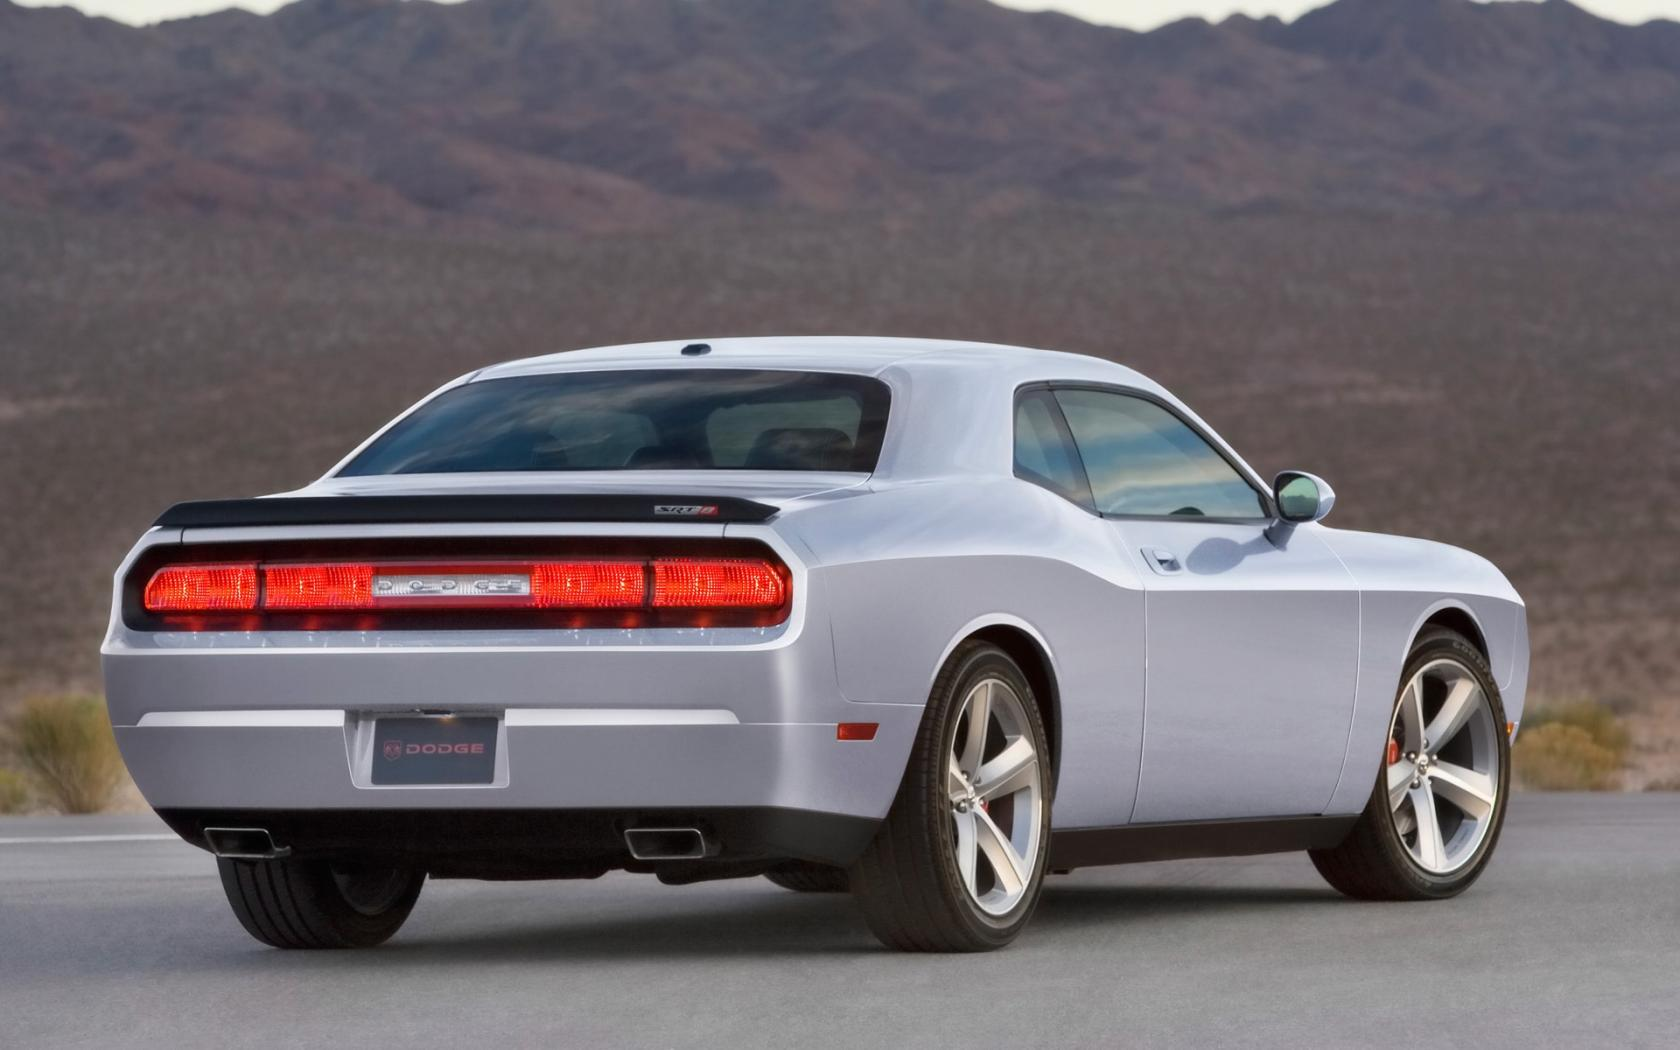 2009 Dodge Challenger Srt8 Rear Angle 1680x1050